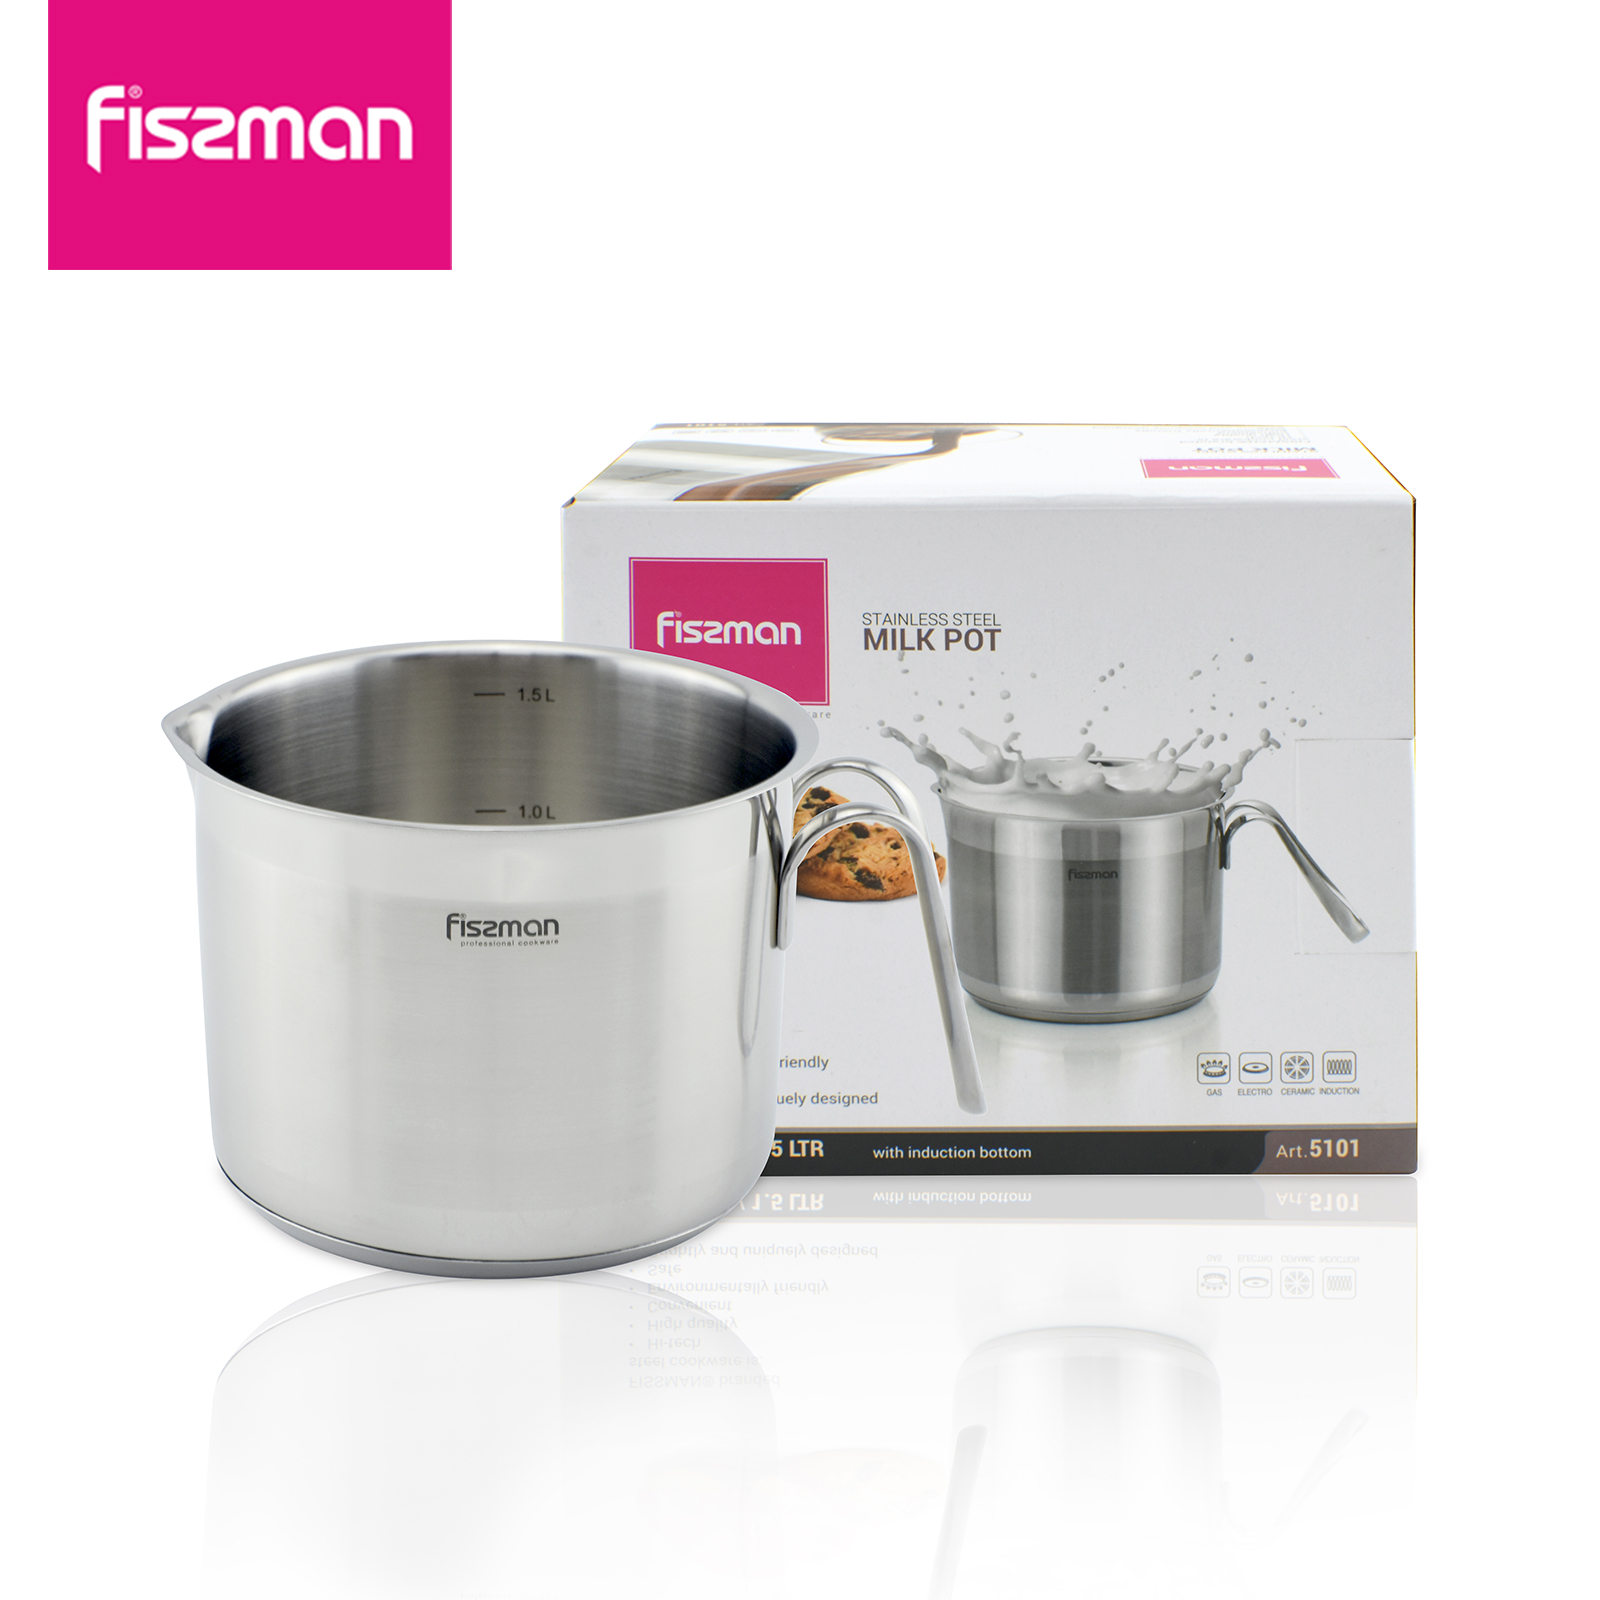 Fissman 1.5l practical milk pot, mini soup pot butter hot sauce pot  noodle soup pot,Kitchen cooking pot